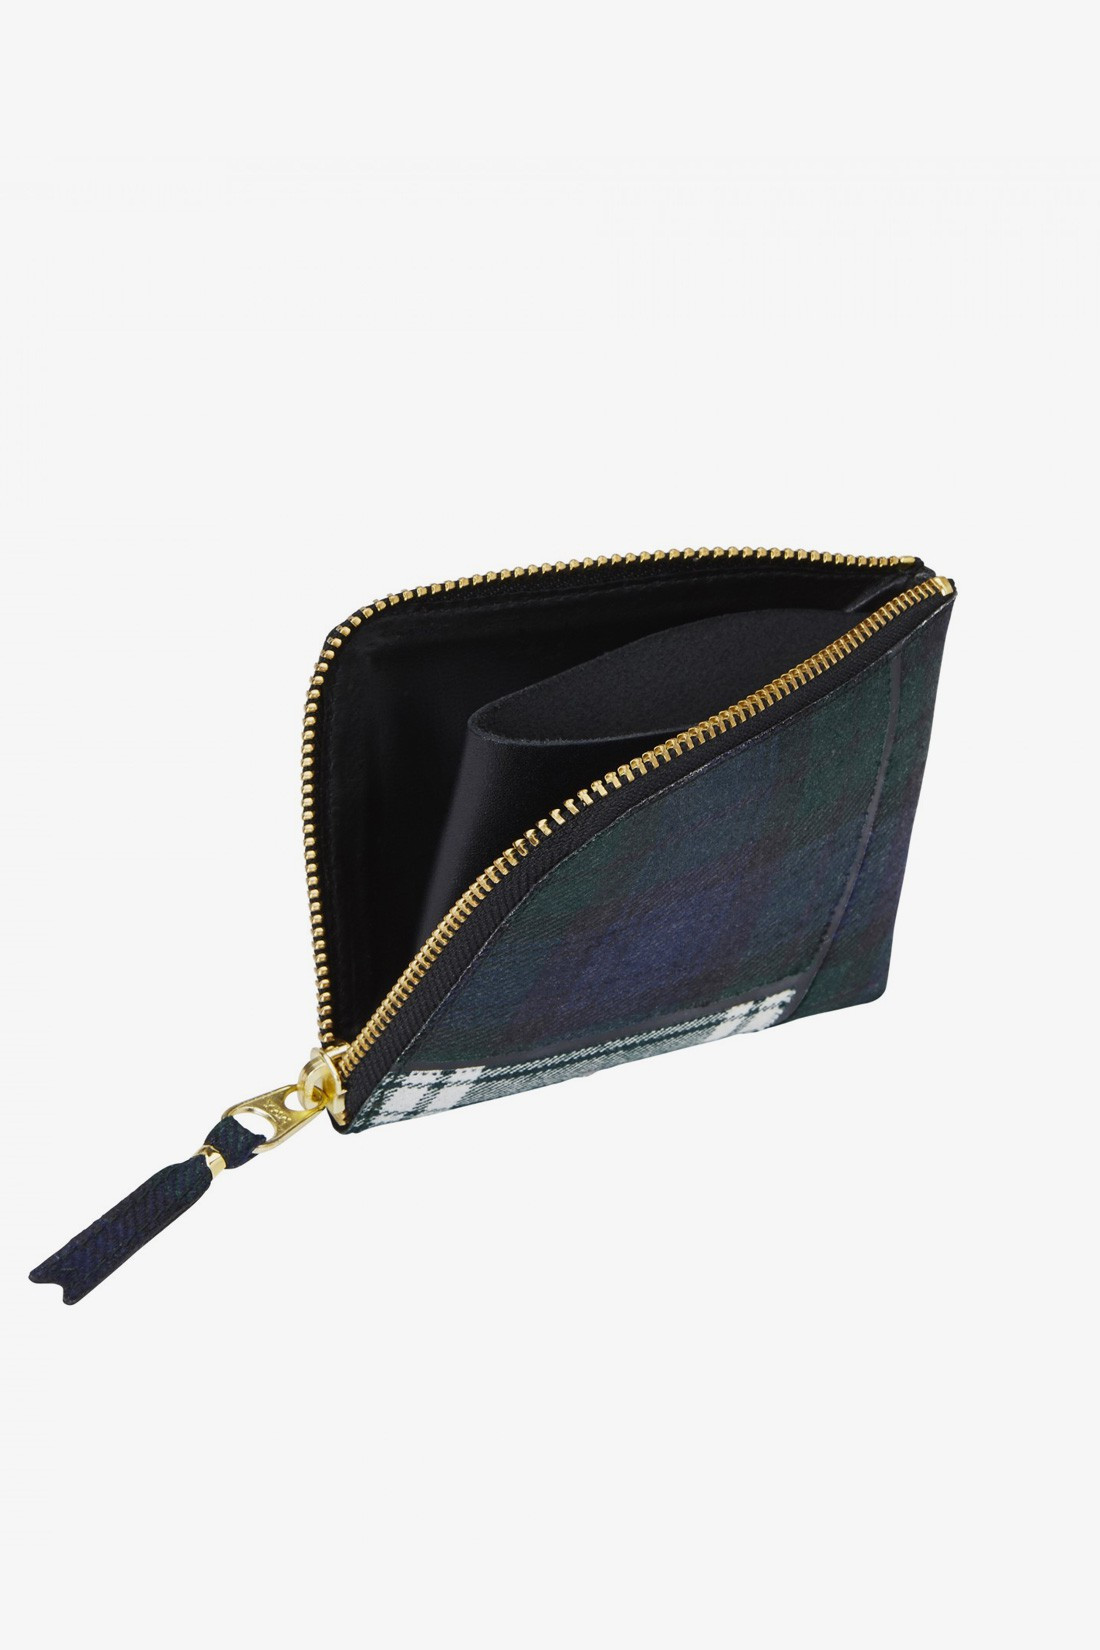 CDG WALLETS / Cdg wallet tartan sa3100tp Green